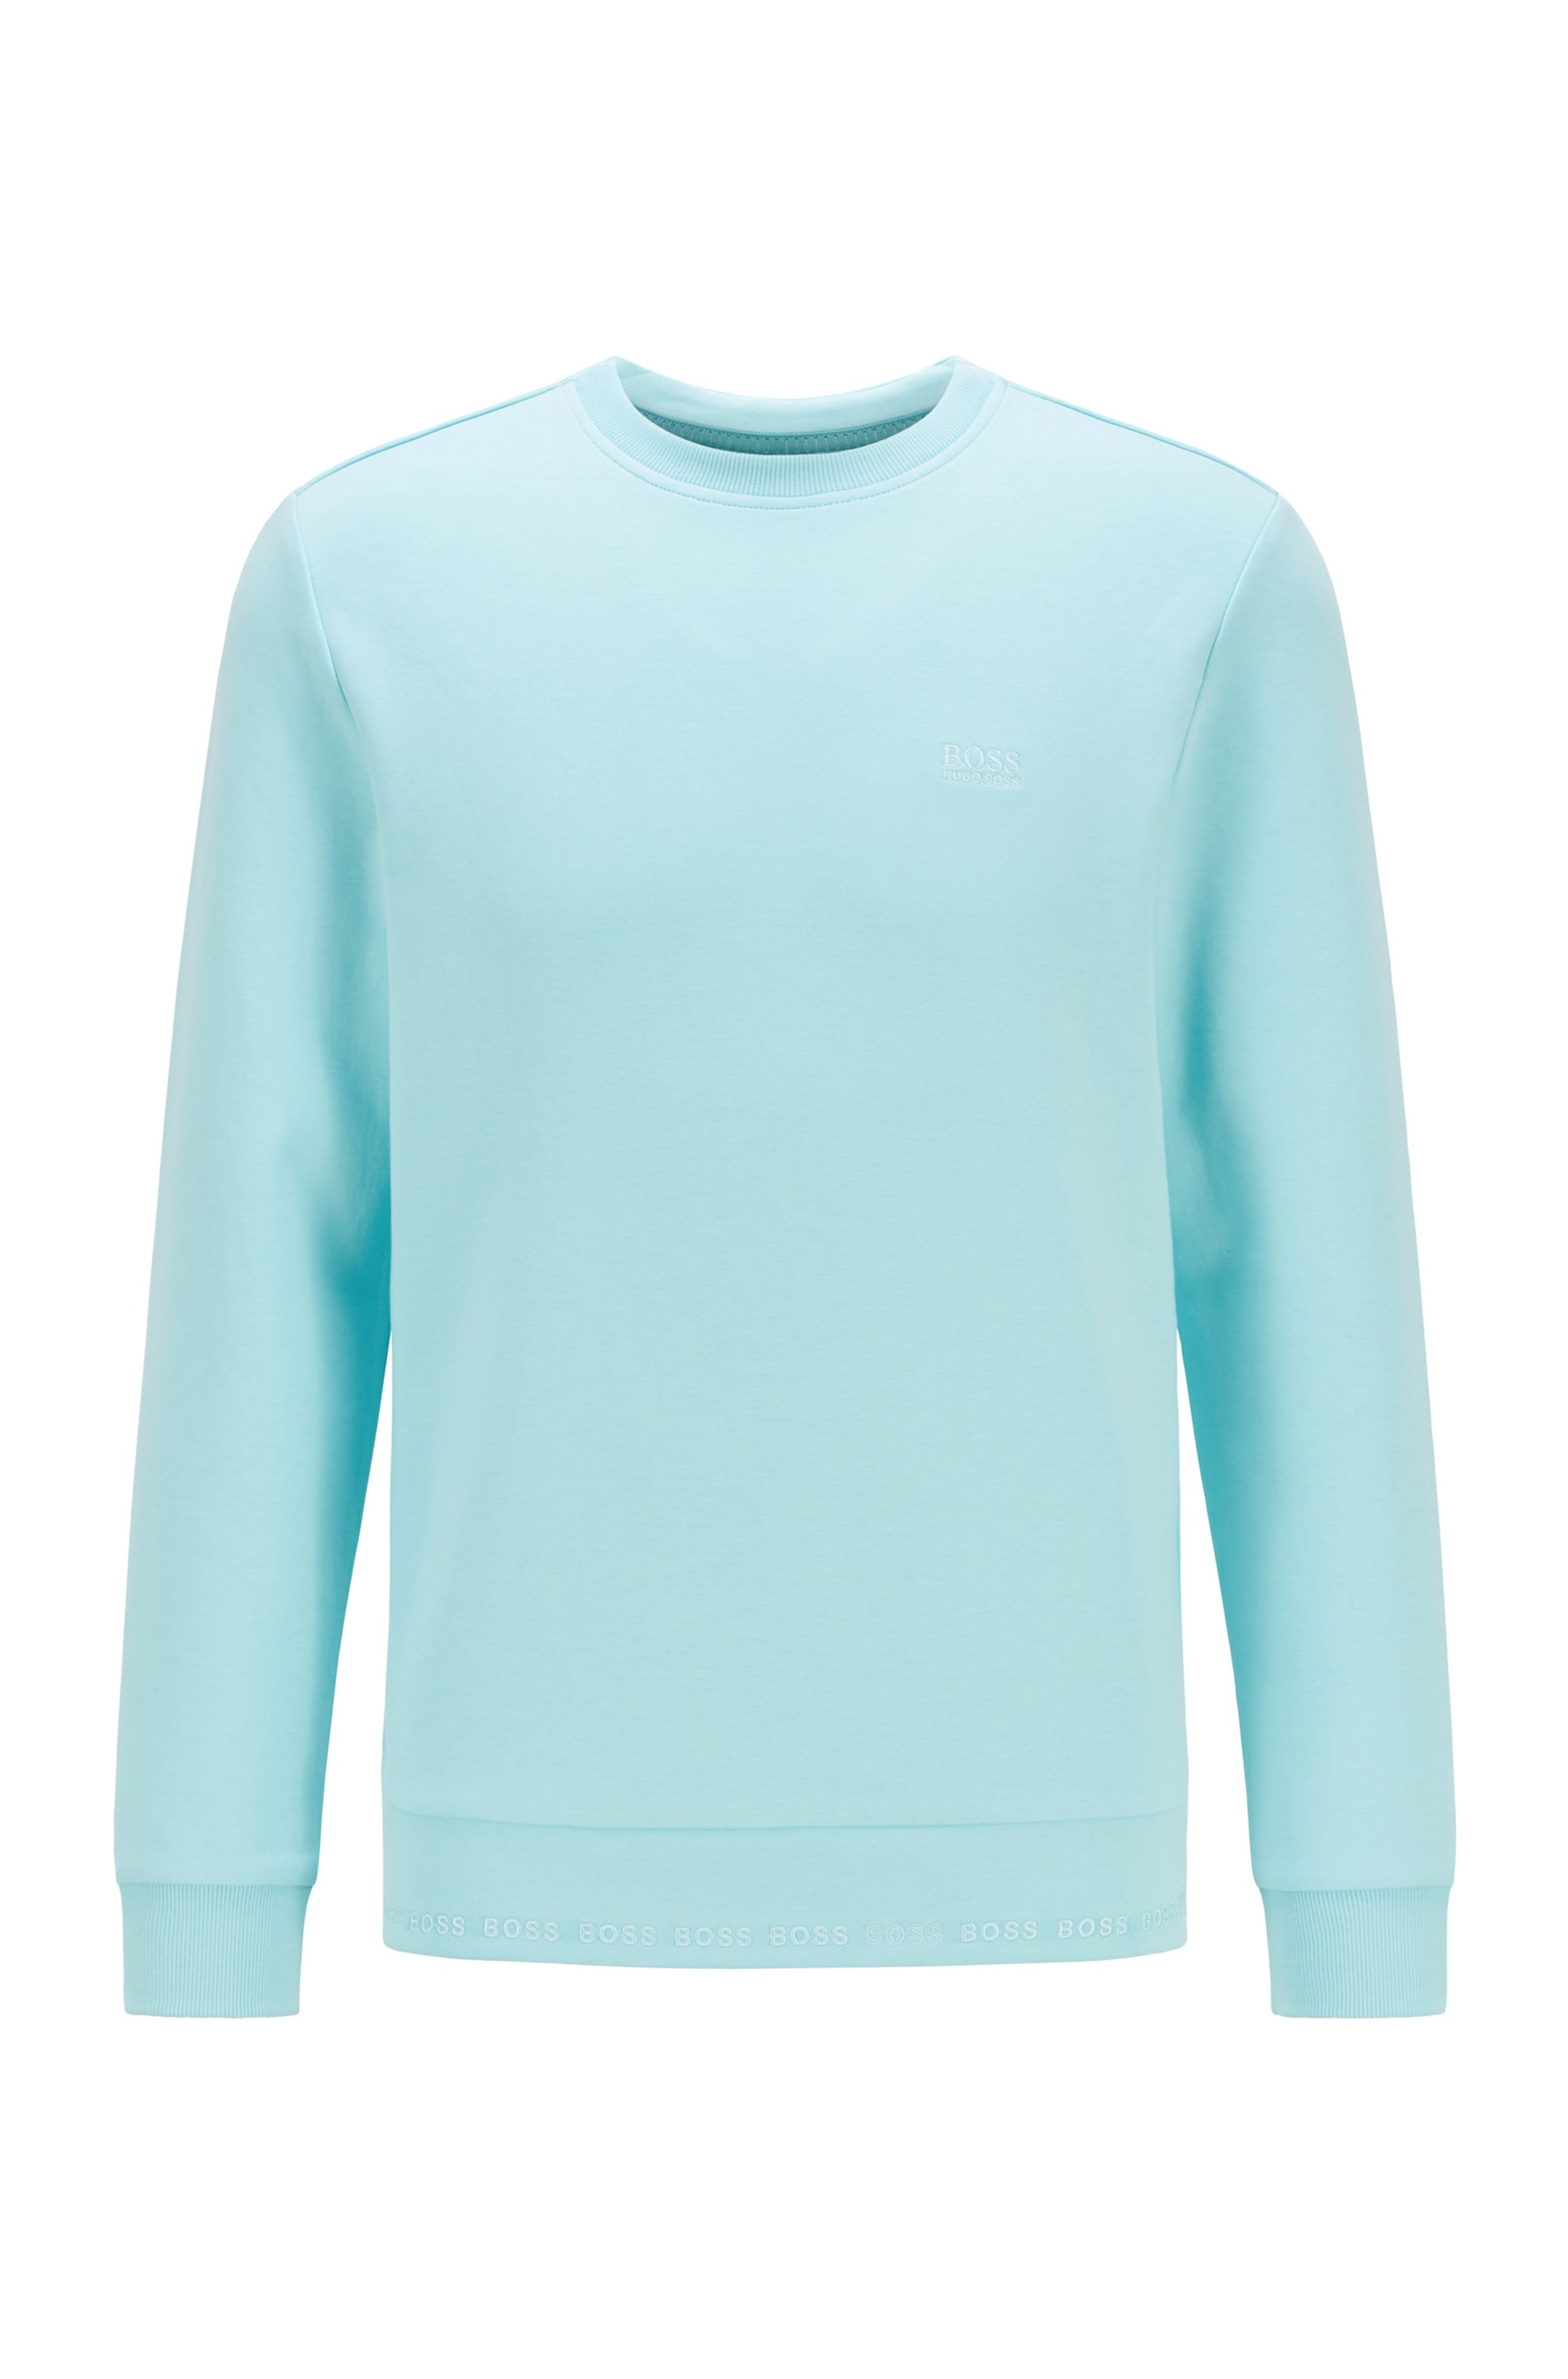 Slim-fit sweatshirt with embroidered-logo detailing, Light Blue